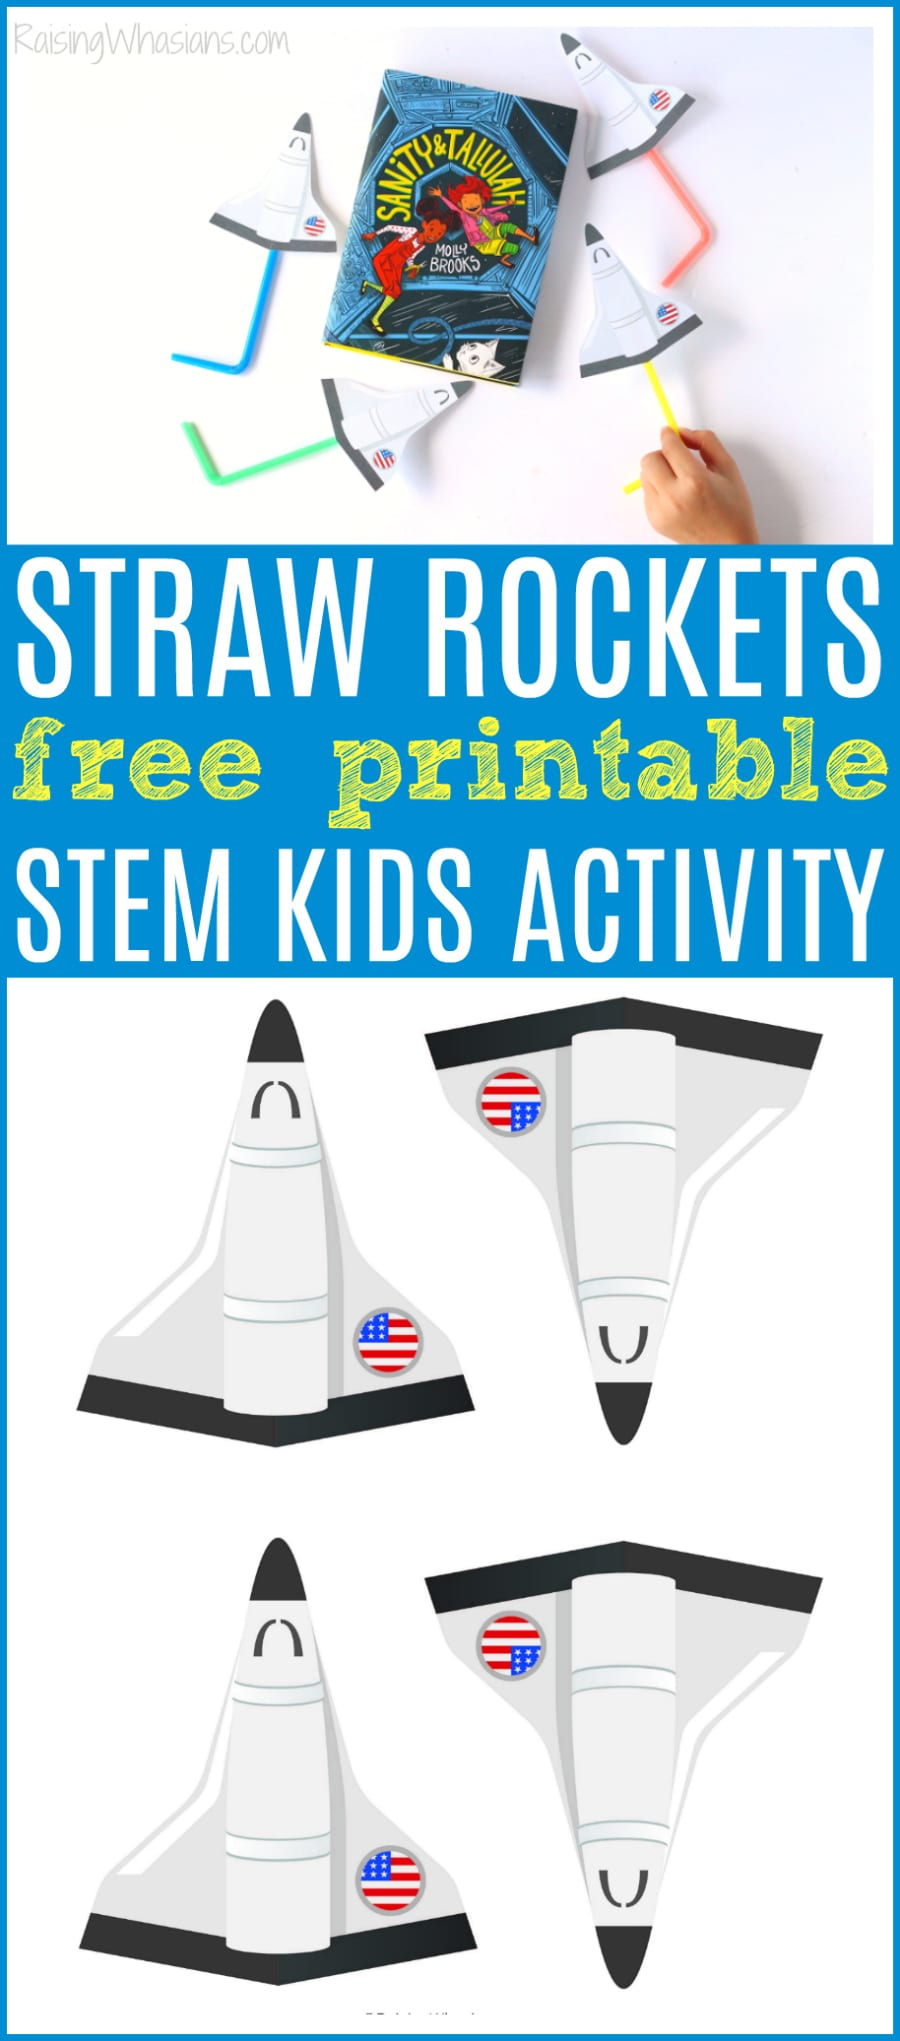 Straw rockets free printable